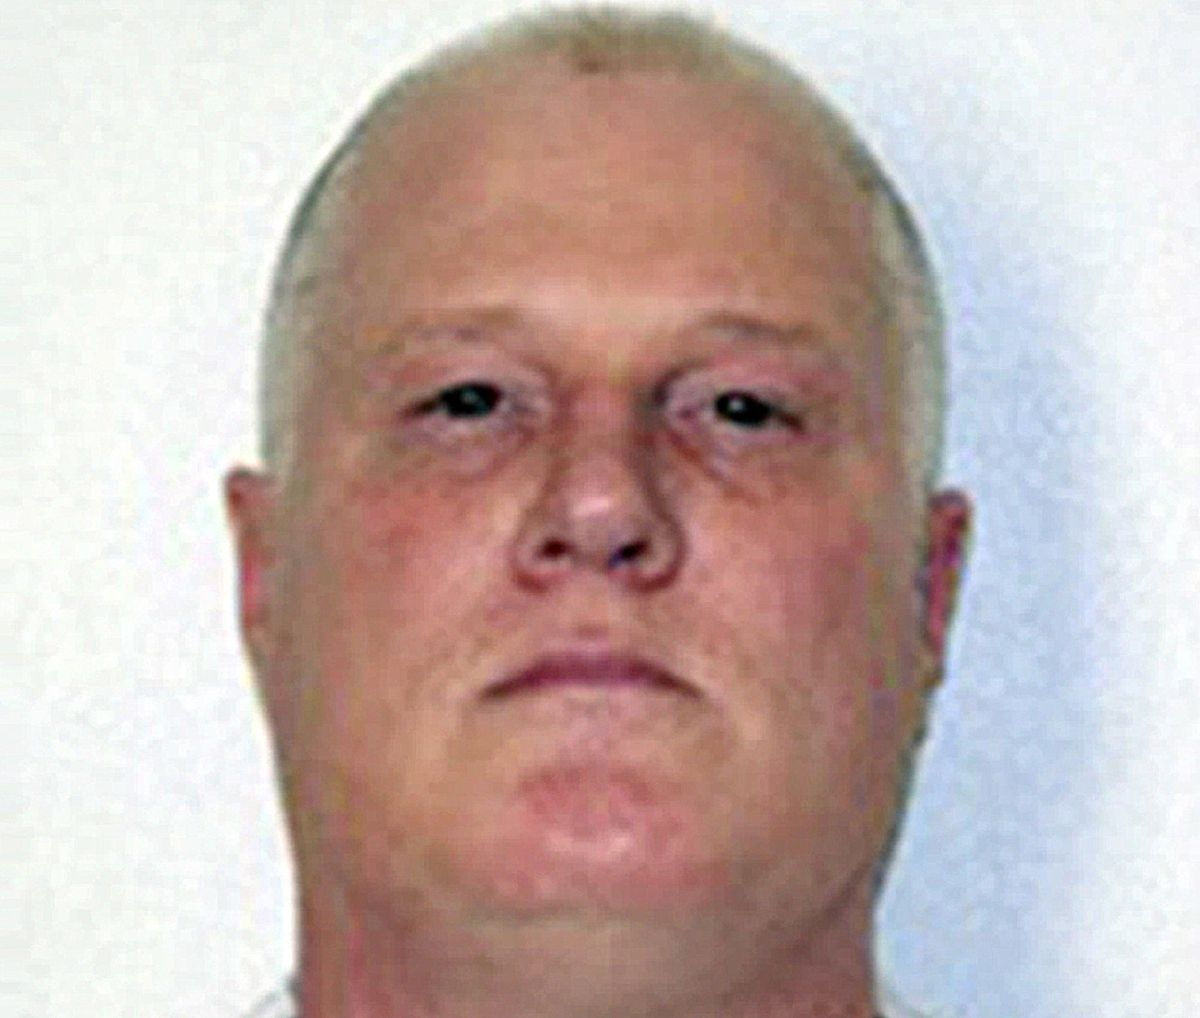 Don William Davis had been scheduled for execution on Monday. <br>Arkansas Department of Correction photo, distributed by the Associated Press